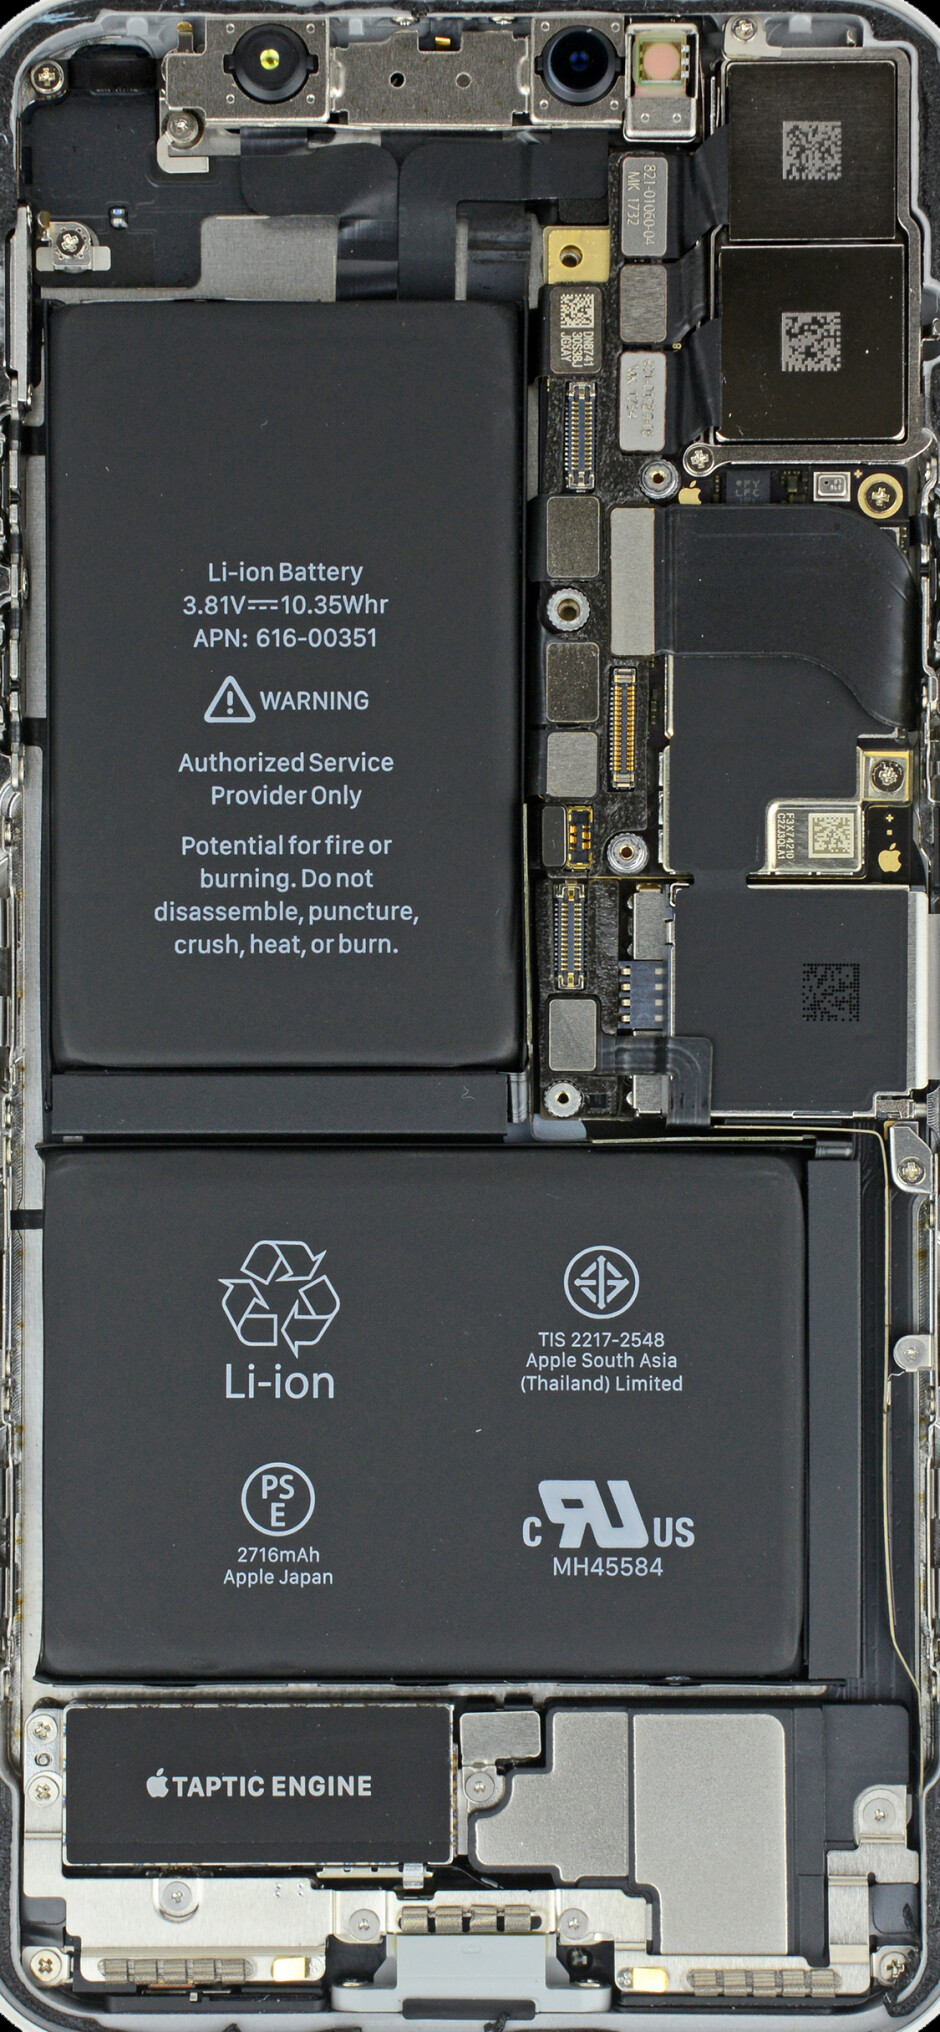 The battery cell separator of the iPhone X may be a thing of the past in the Xs, increasing capacity - Apple's iPhone Xs/Plus tipped to come with high-capacity L-shaped batteries by LG